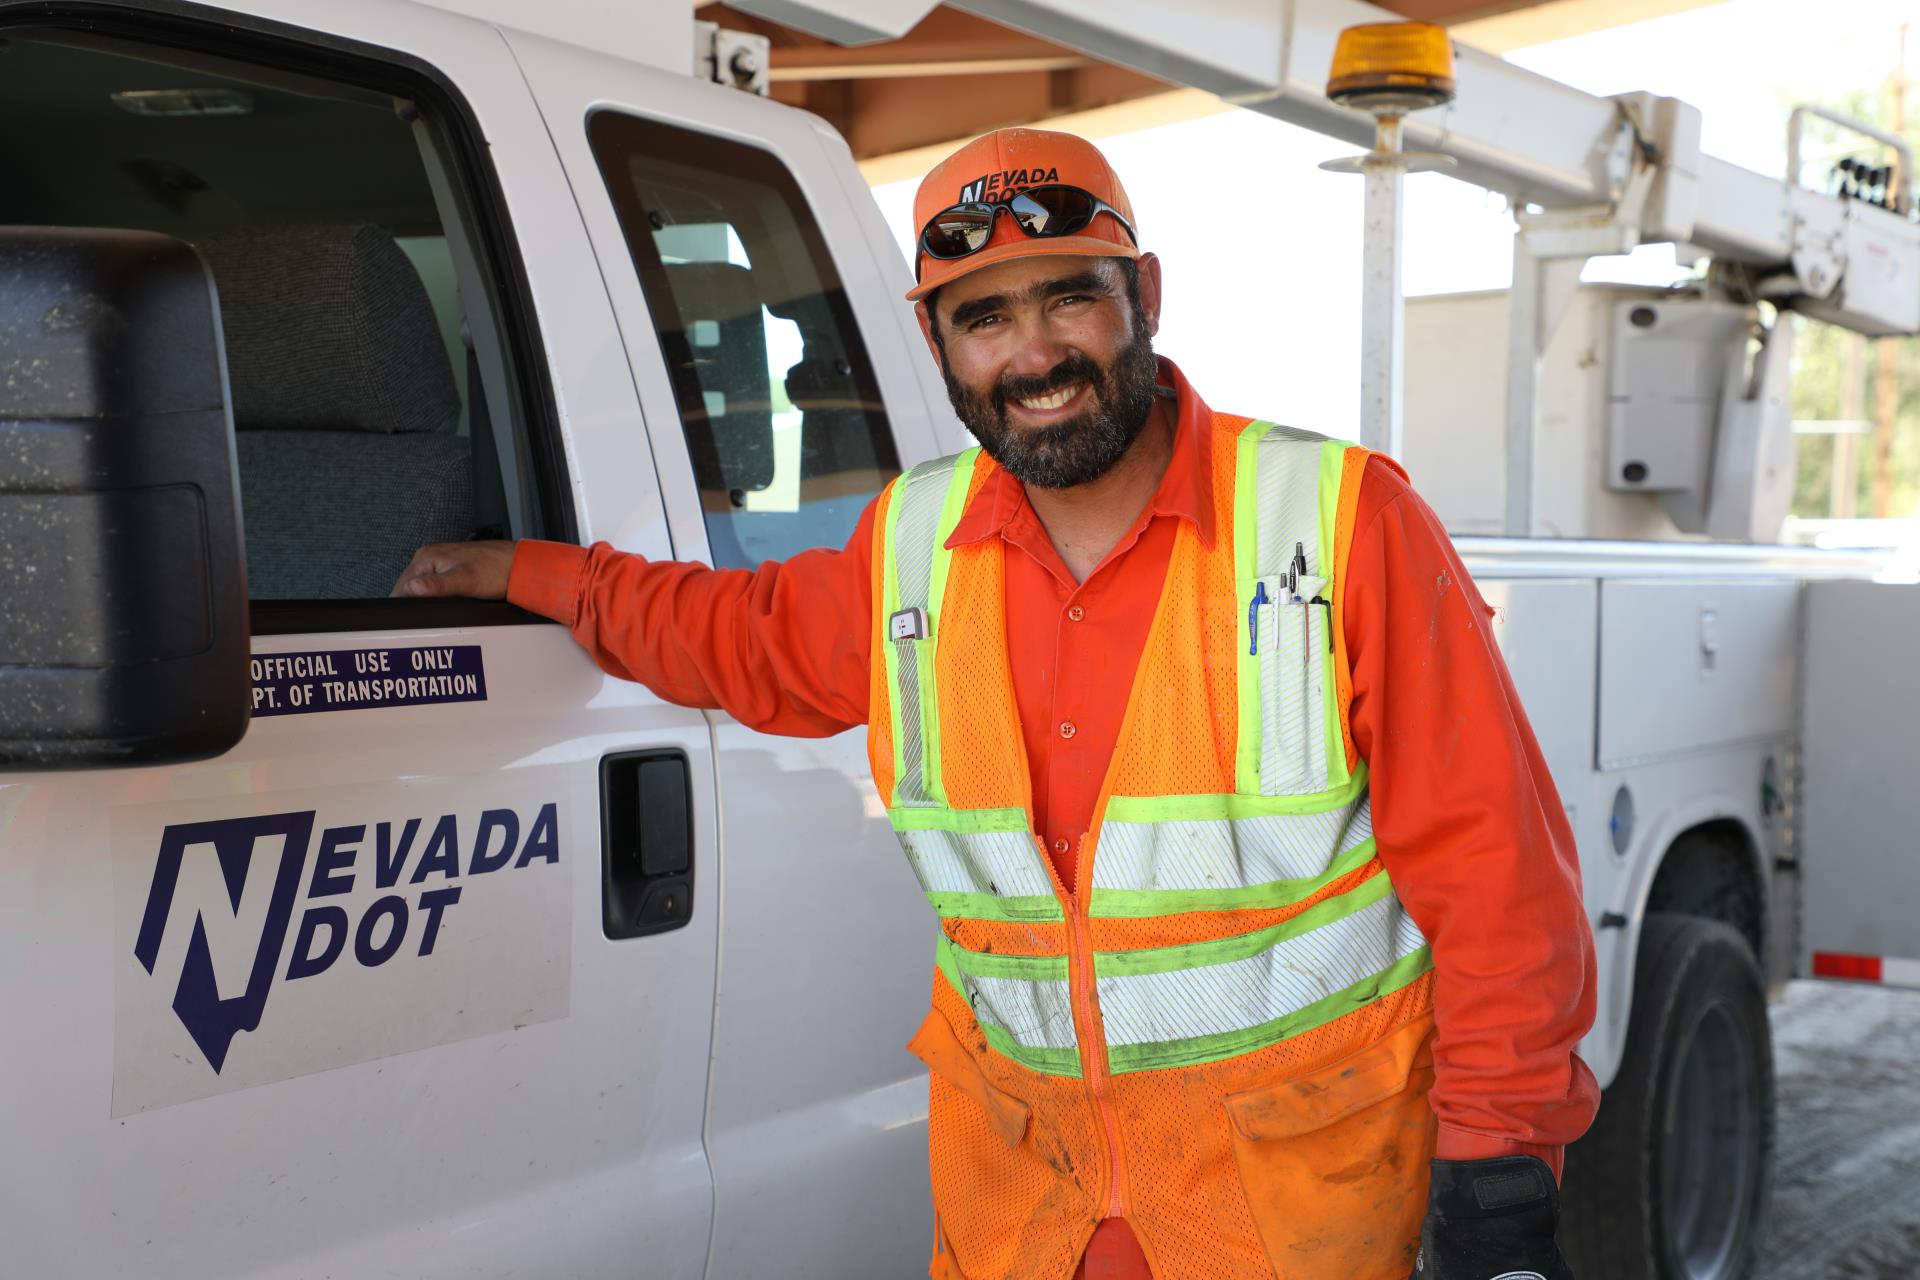 A photo of an NDOT maintenance professional posed with his NDOT vehicle